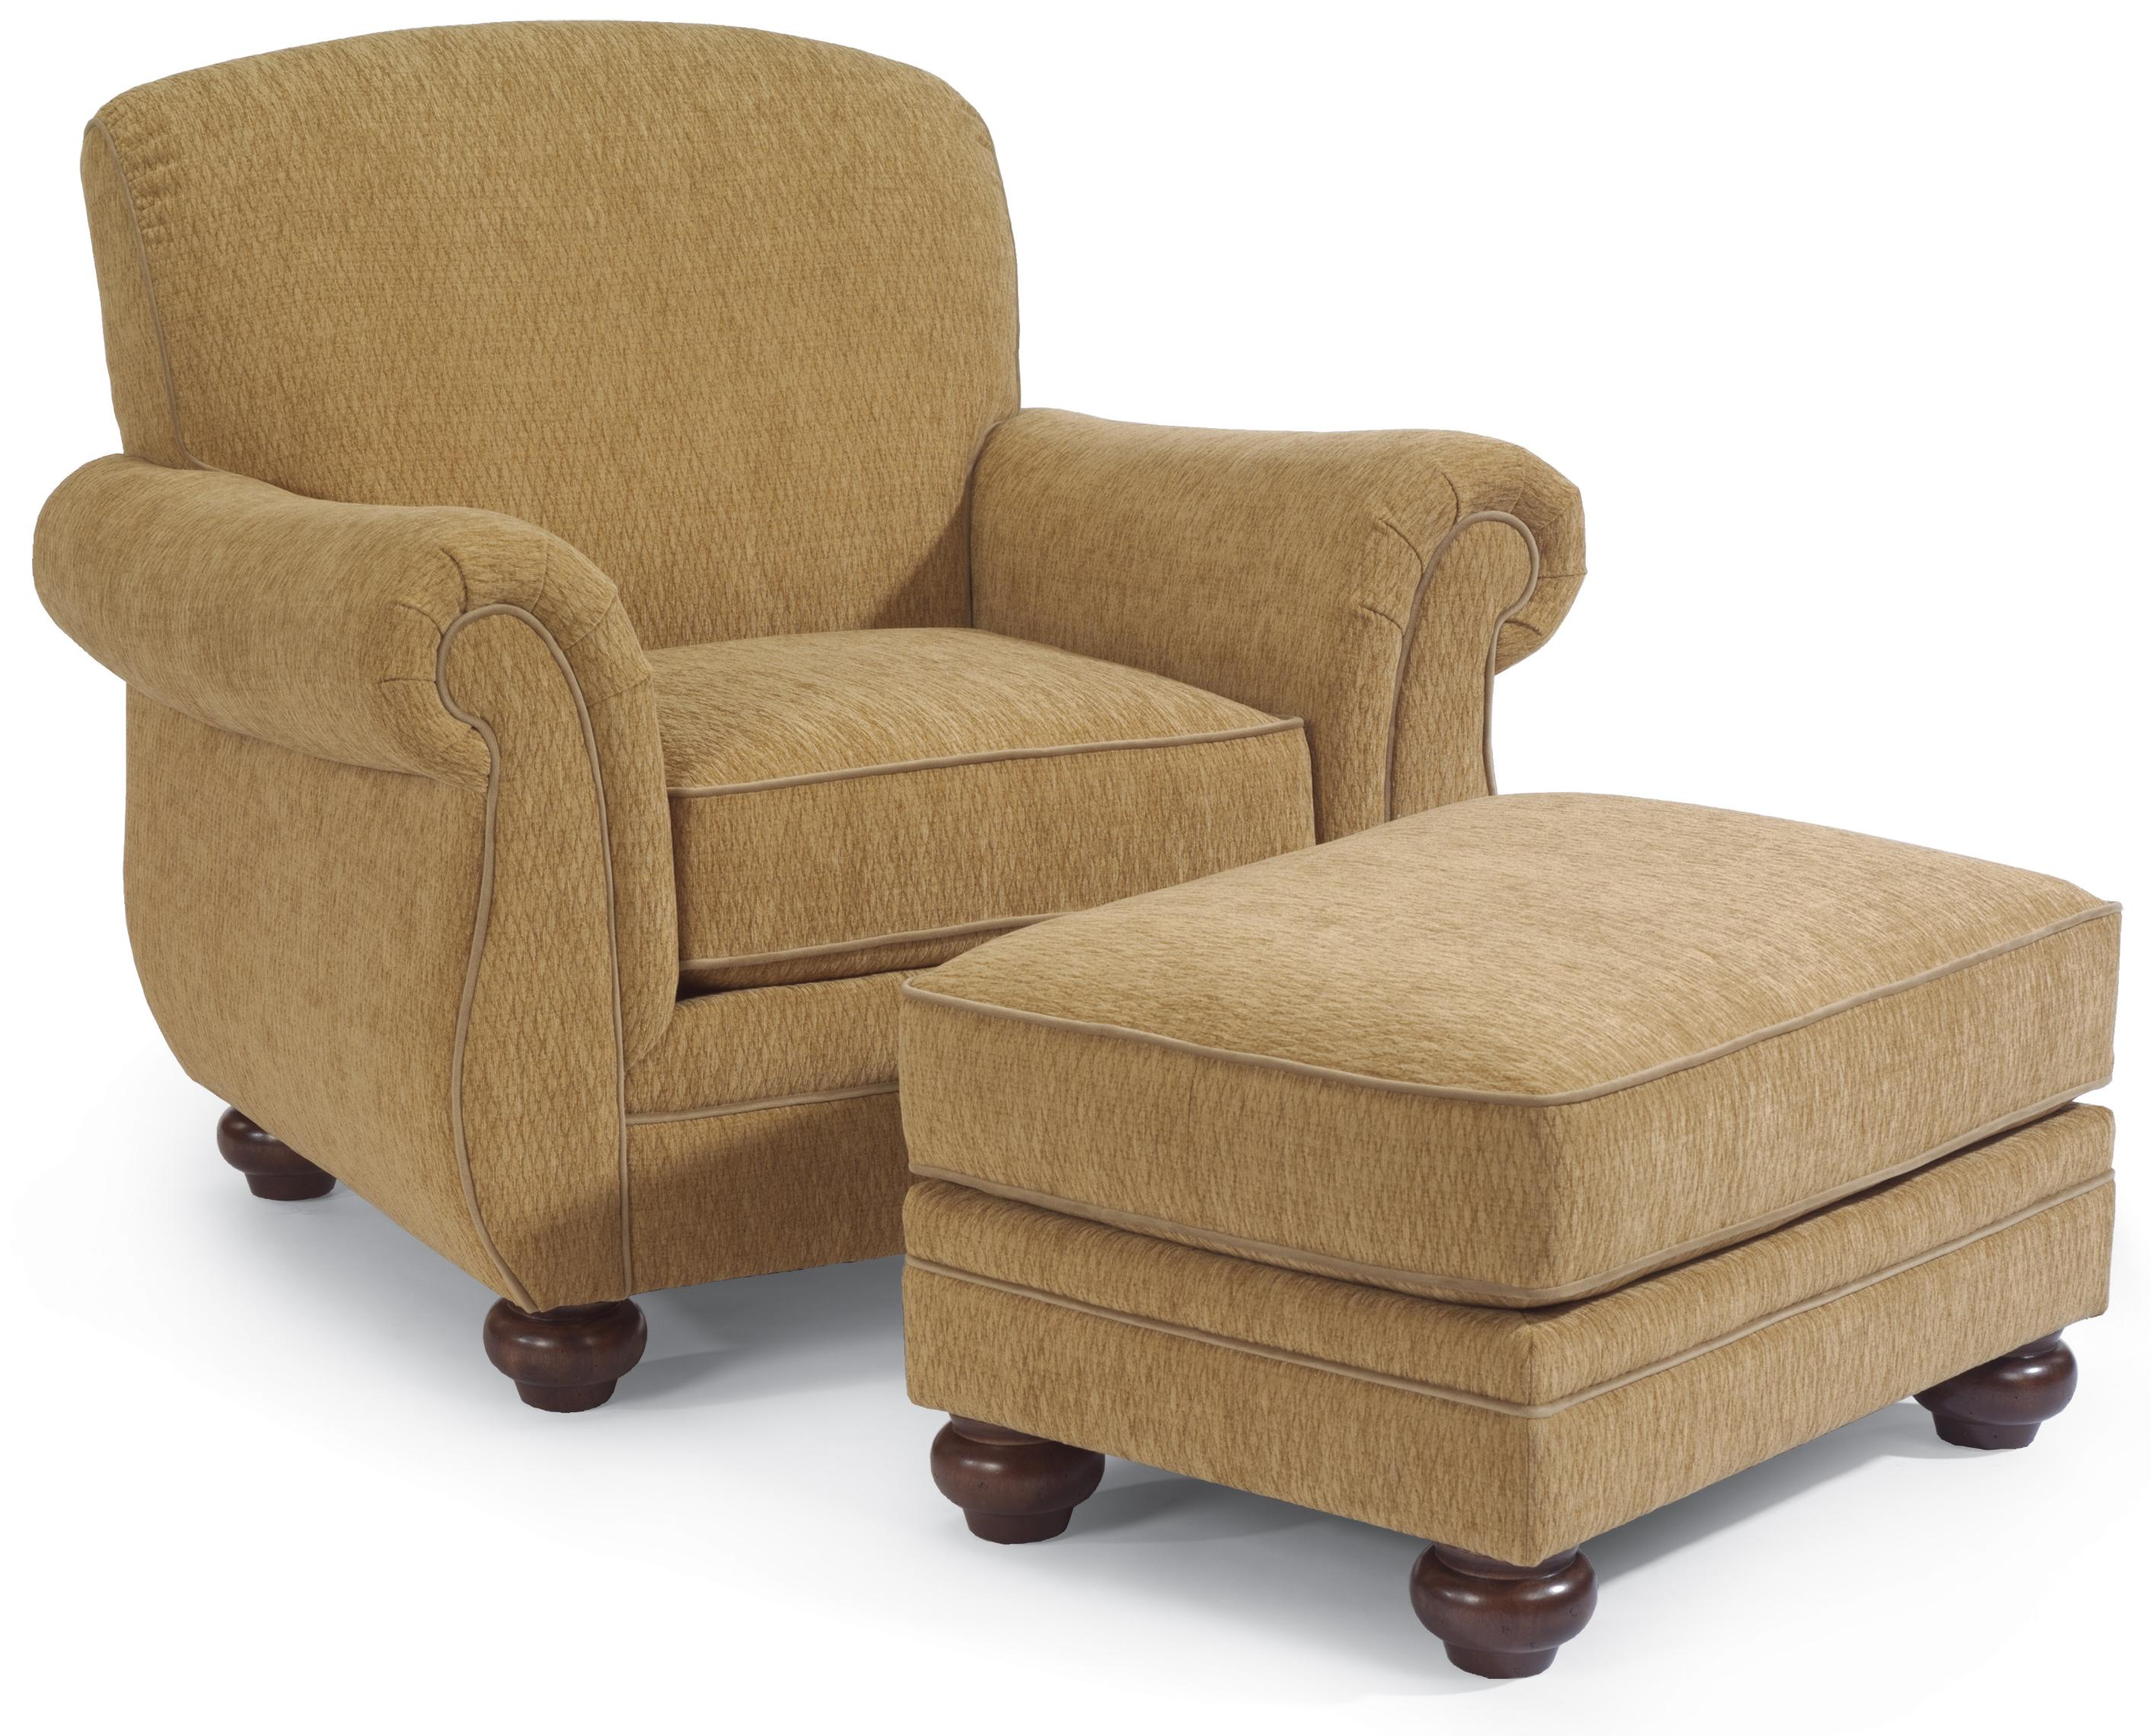 Flexsteel Winston Upholstered Arm Chair With Ottoman Furniture And Appliancemart Chair Ottoman